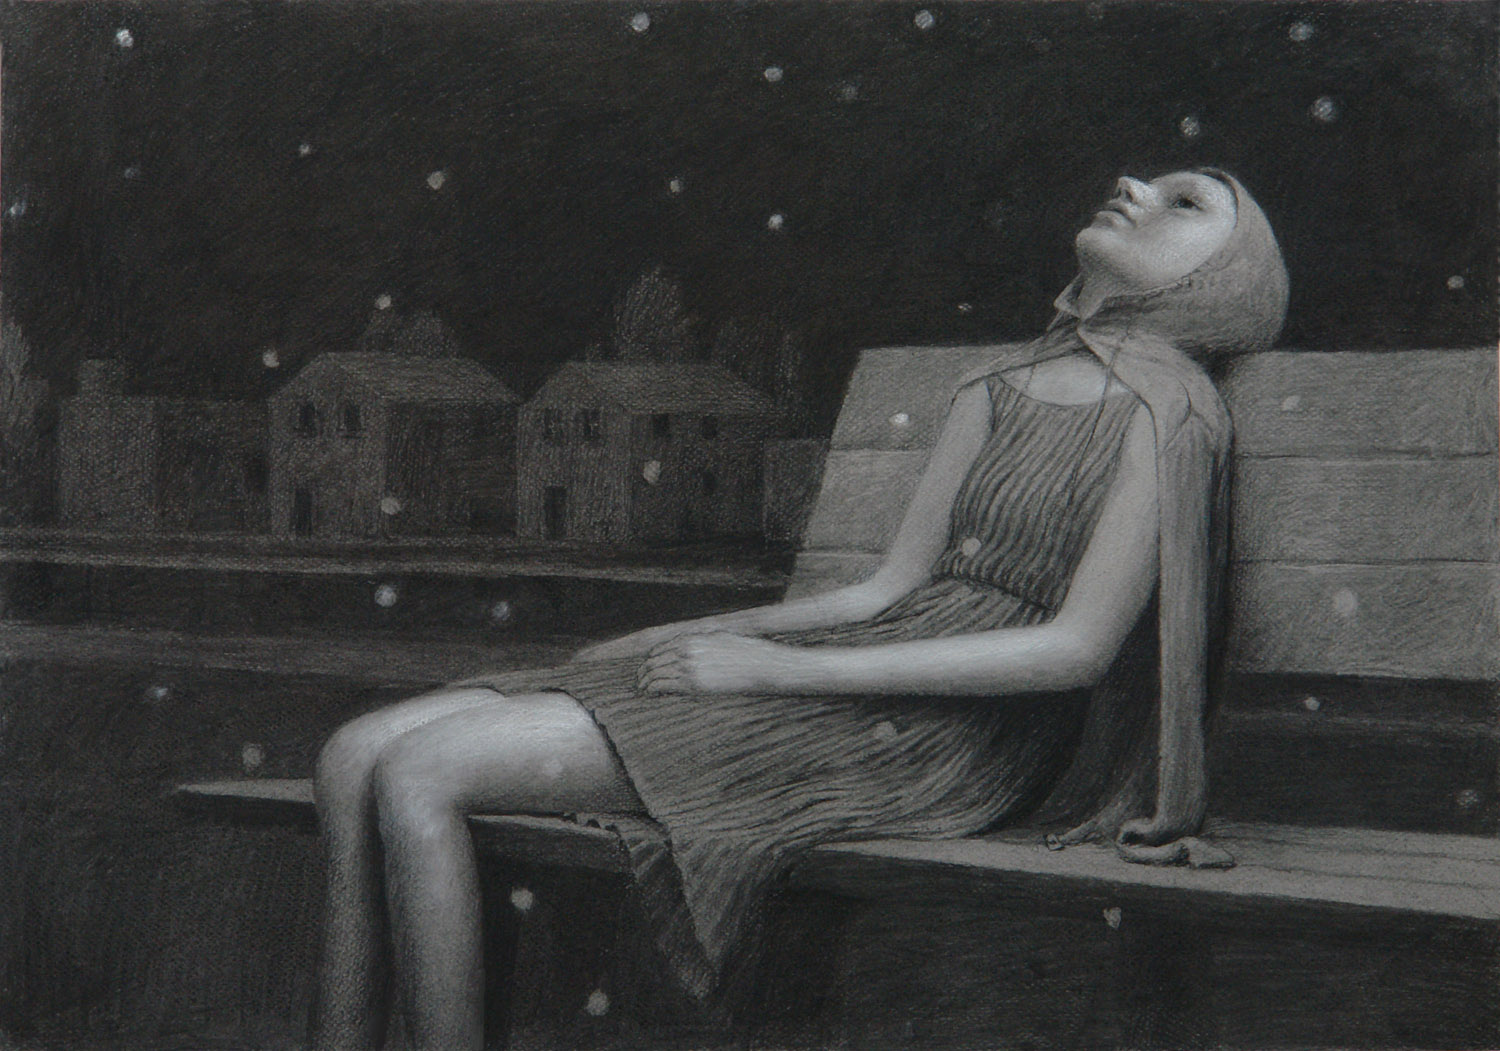 Leigh , charcoal on paper, 19 x 24.5 in, 2007